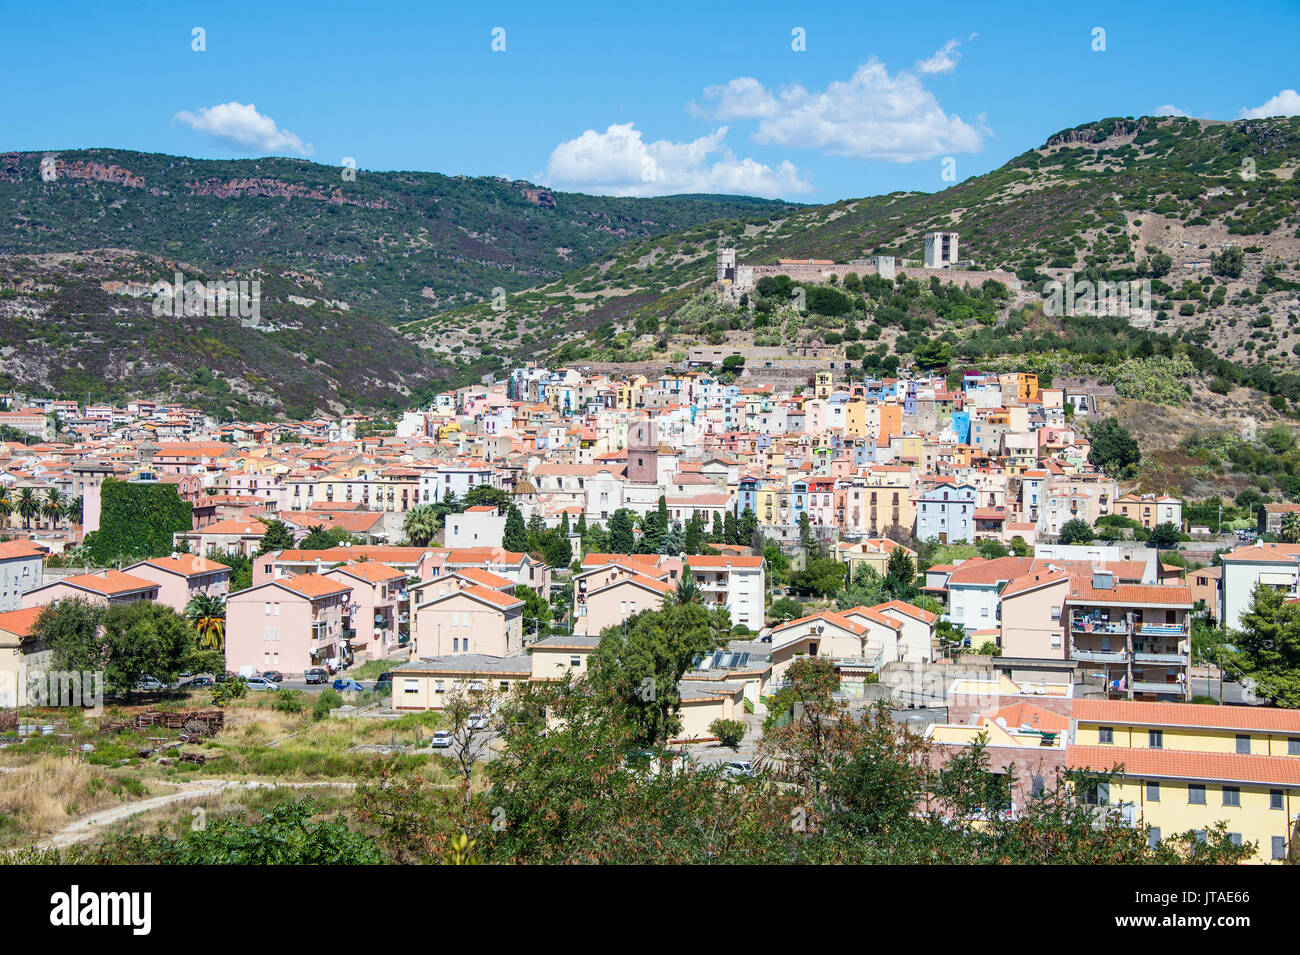 View over the town of Bosa at the River Temo, Sardinia, Italy, Europe - Stock Image